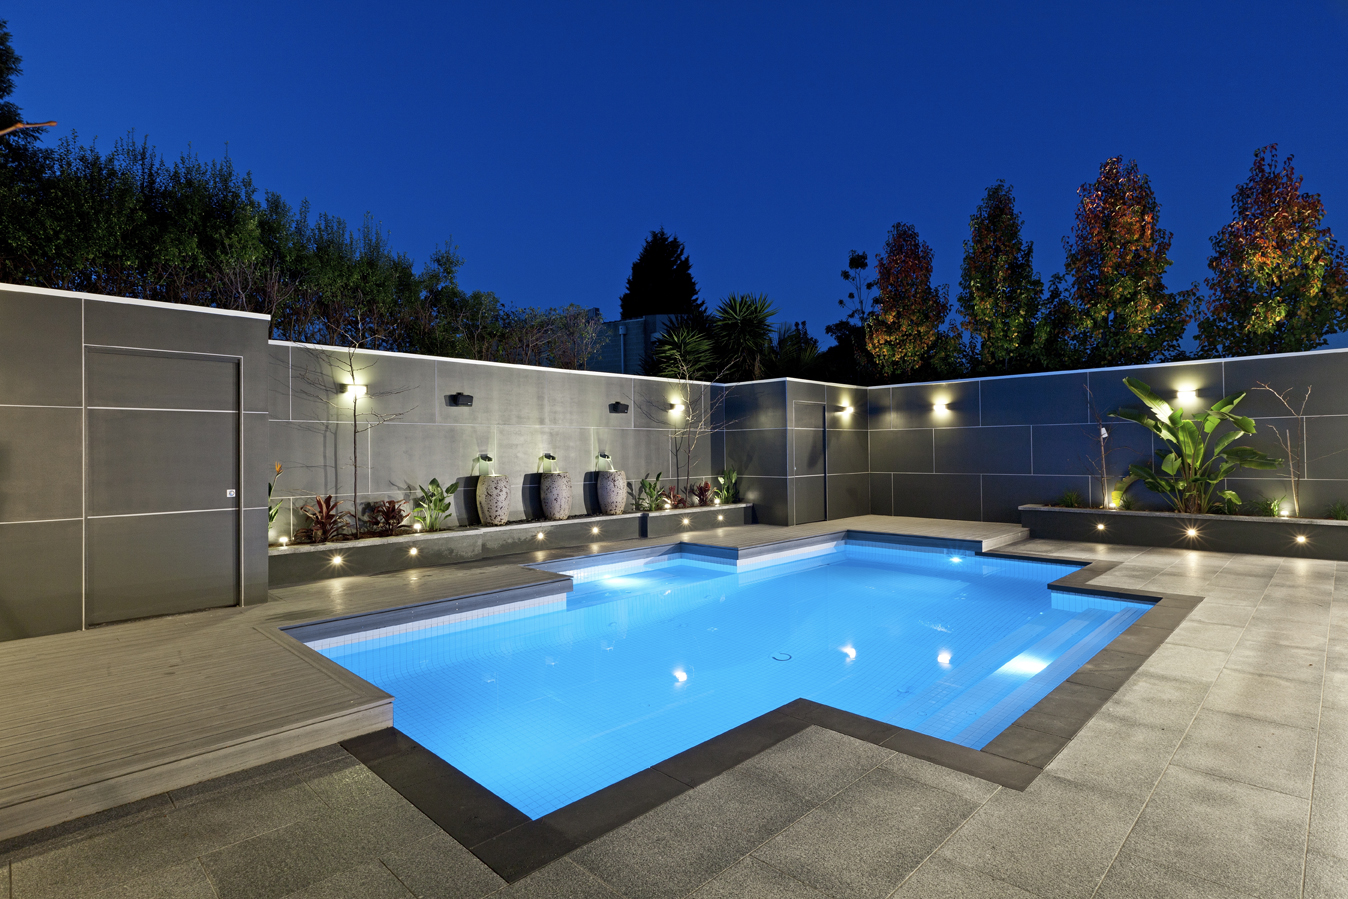 Charming Backyard Landscaping Ideas Swimming Pool Design